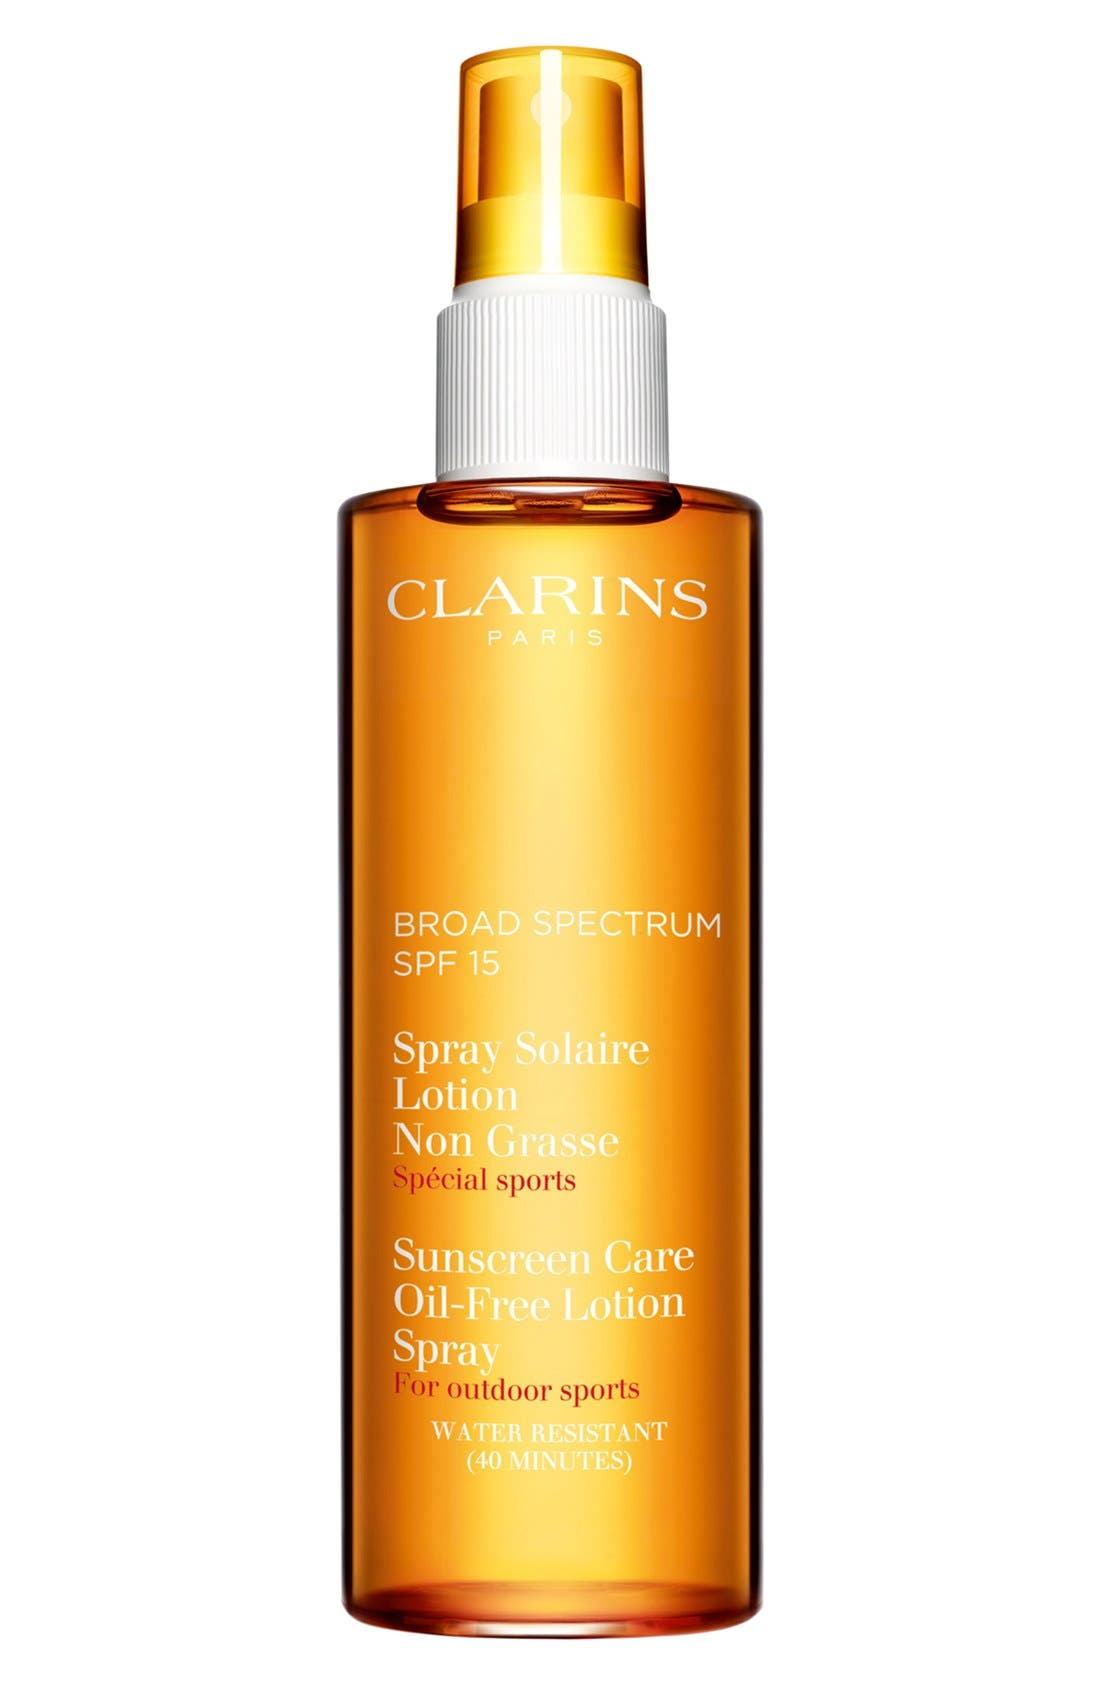 Clarins Sunscreen Care Oil-Free Lotion Spray SPF 15